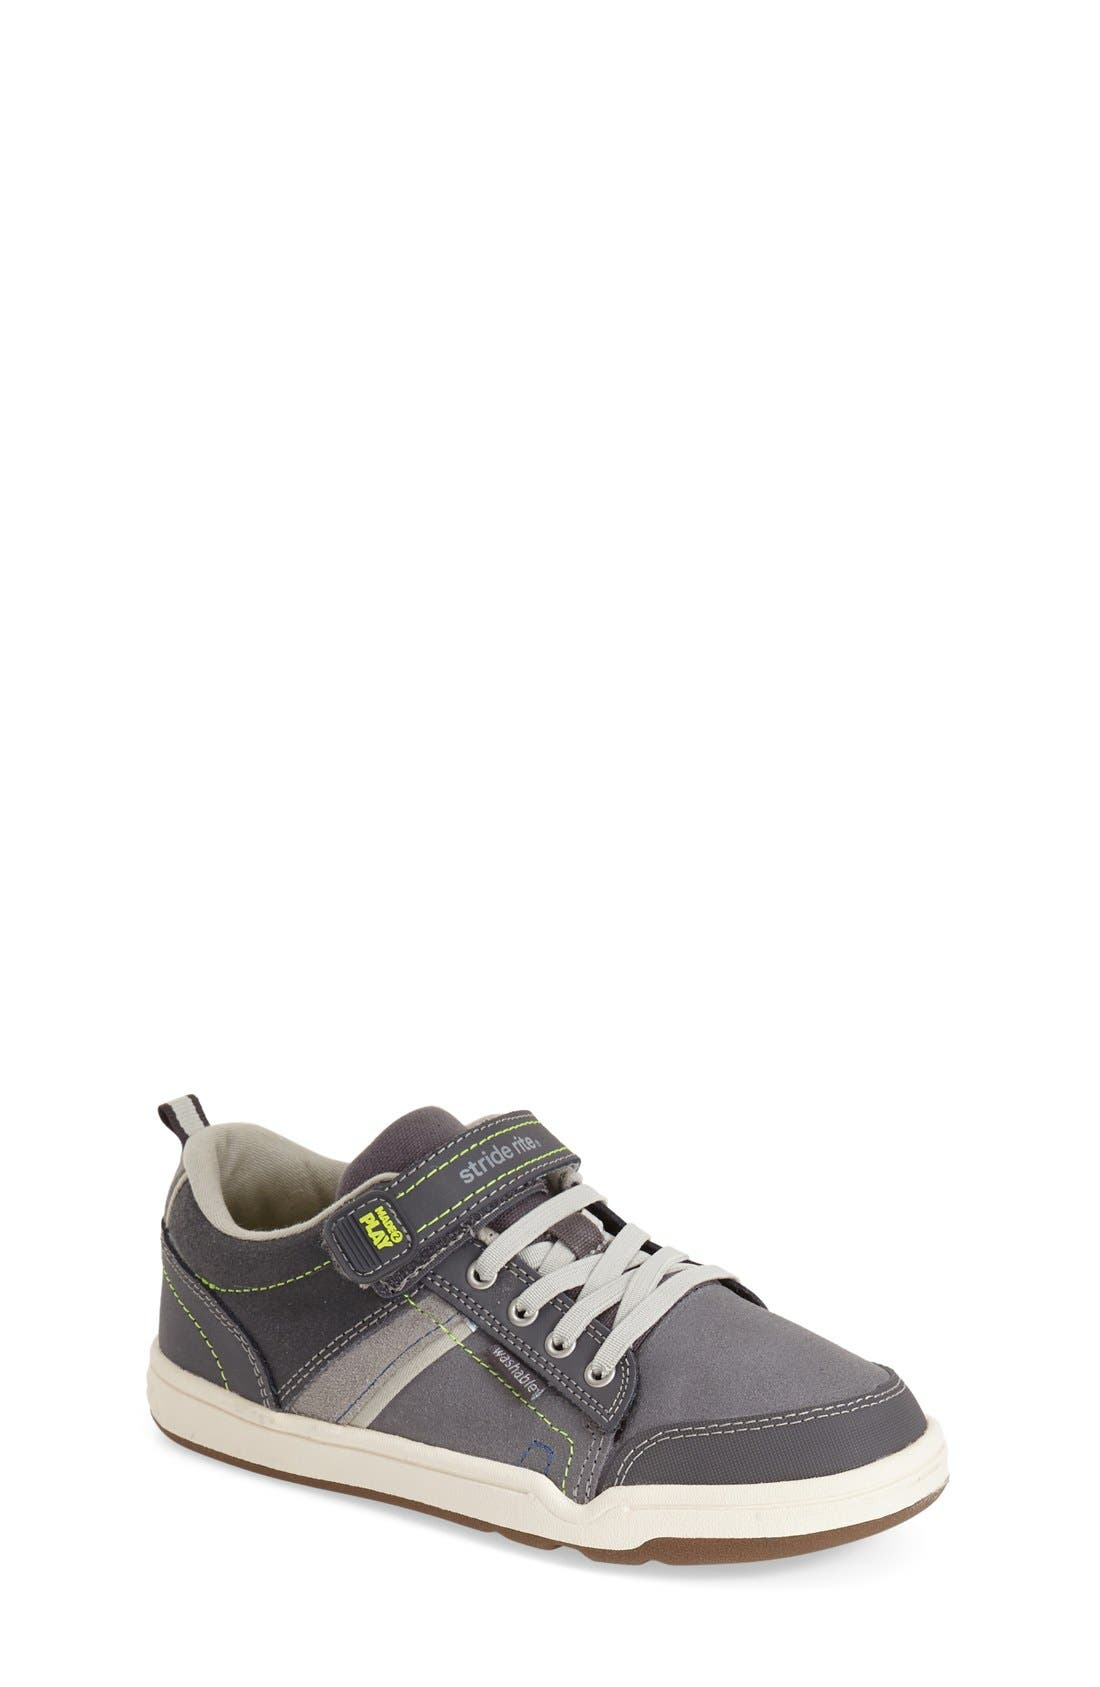 Alternate Image 1 Selected - Stride Rite 'Made 2 Play® Caleb' Sneaker (Toddler & Little Kid) (Online Only)